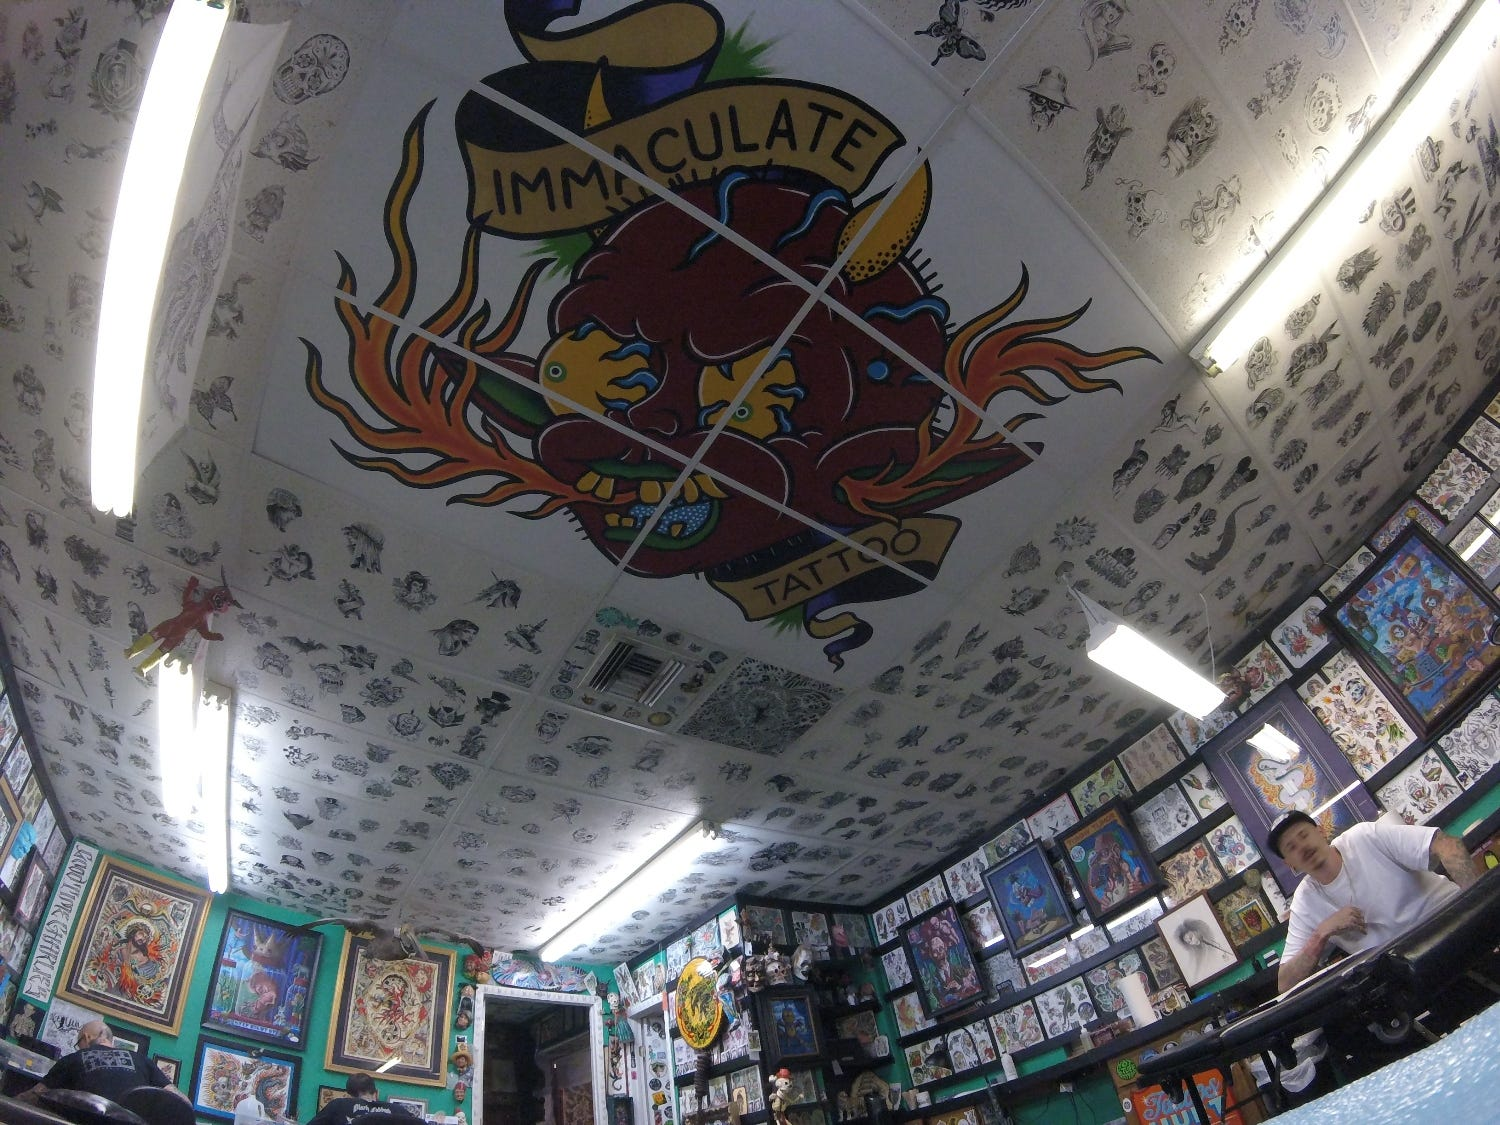 Immaculate Tattoo in Mesa. Arizona, lures in customers with an amazing art collection.